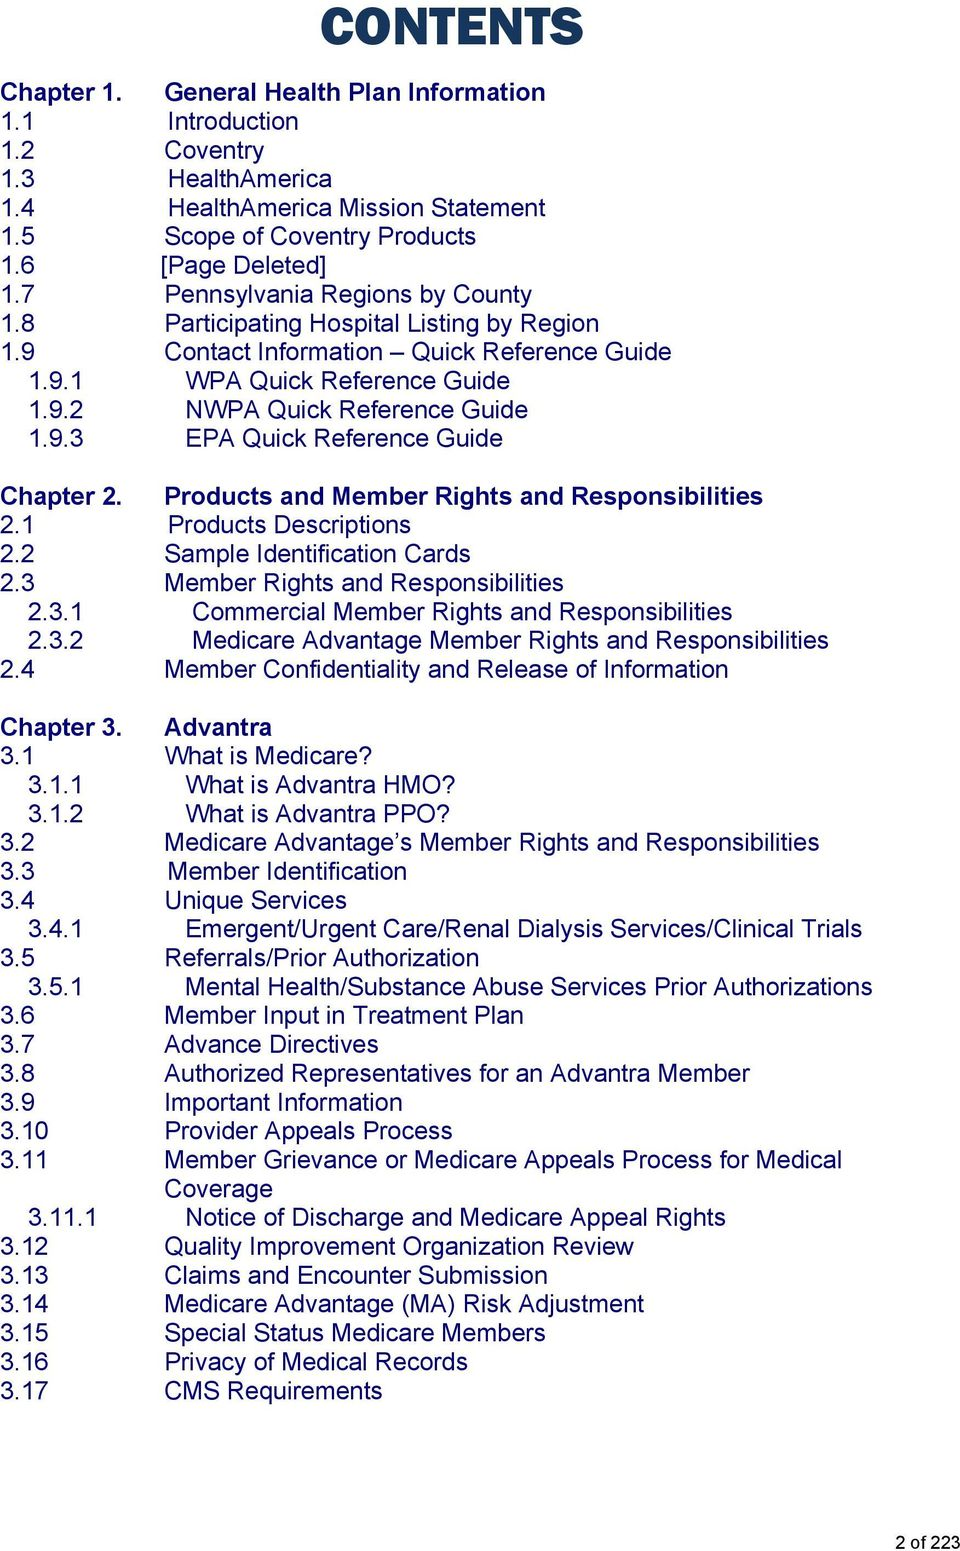 Products and Member Rights and Responsibilities 2.1 Products Descriptions 2.2 Sample Identification Cards 2.3 Member Rights and Responsibilities 2.3.1 Commercial Member Rights and Responsibilities 2.